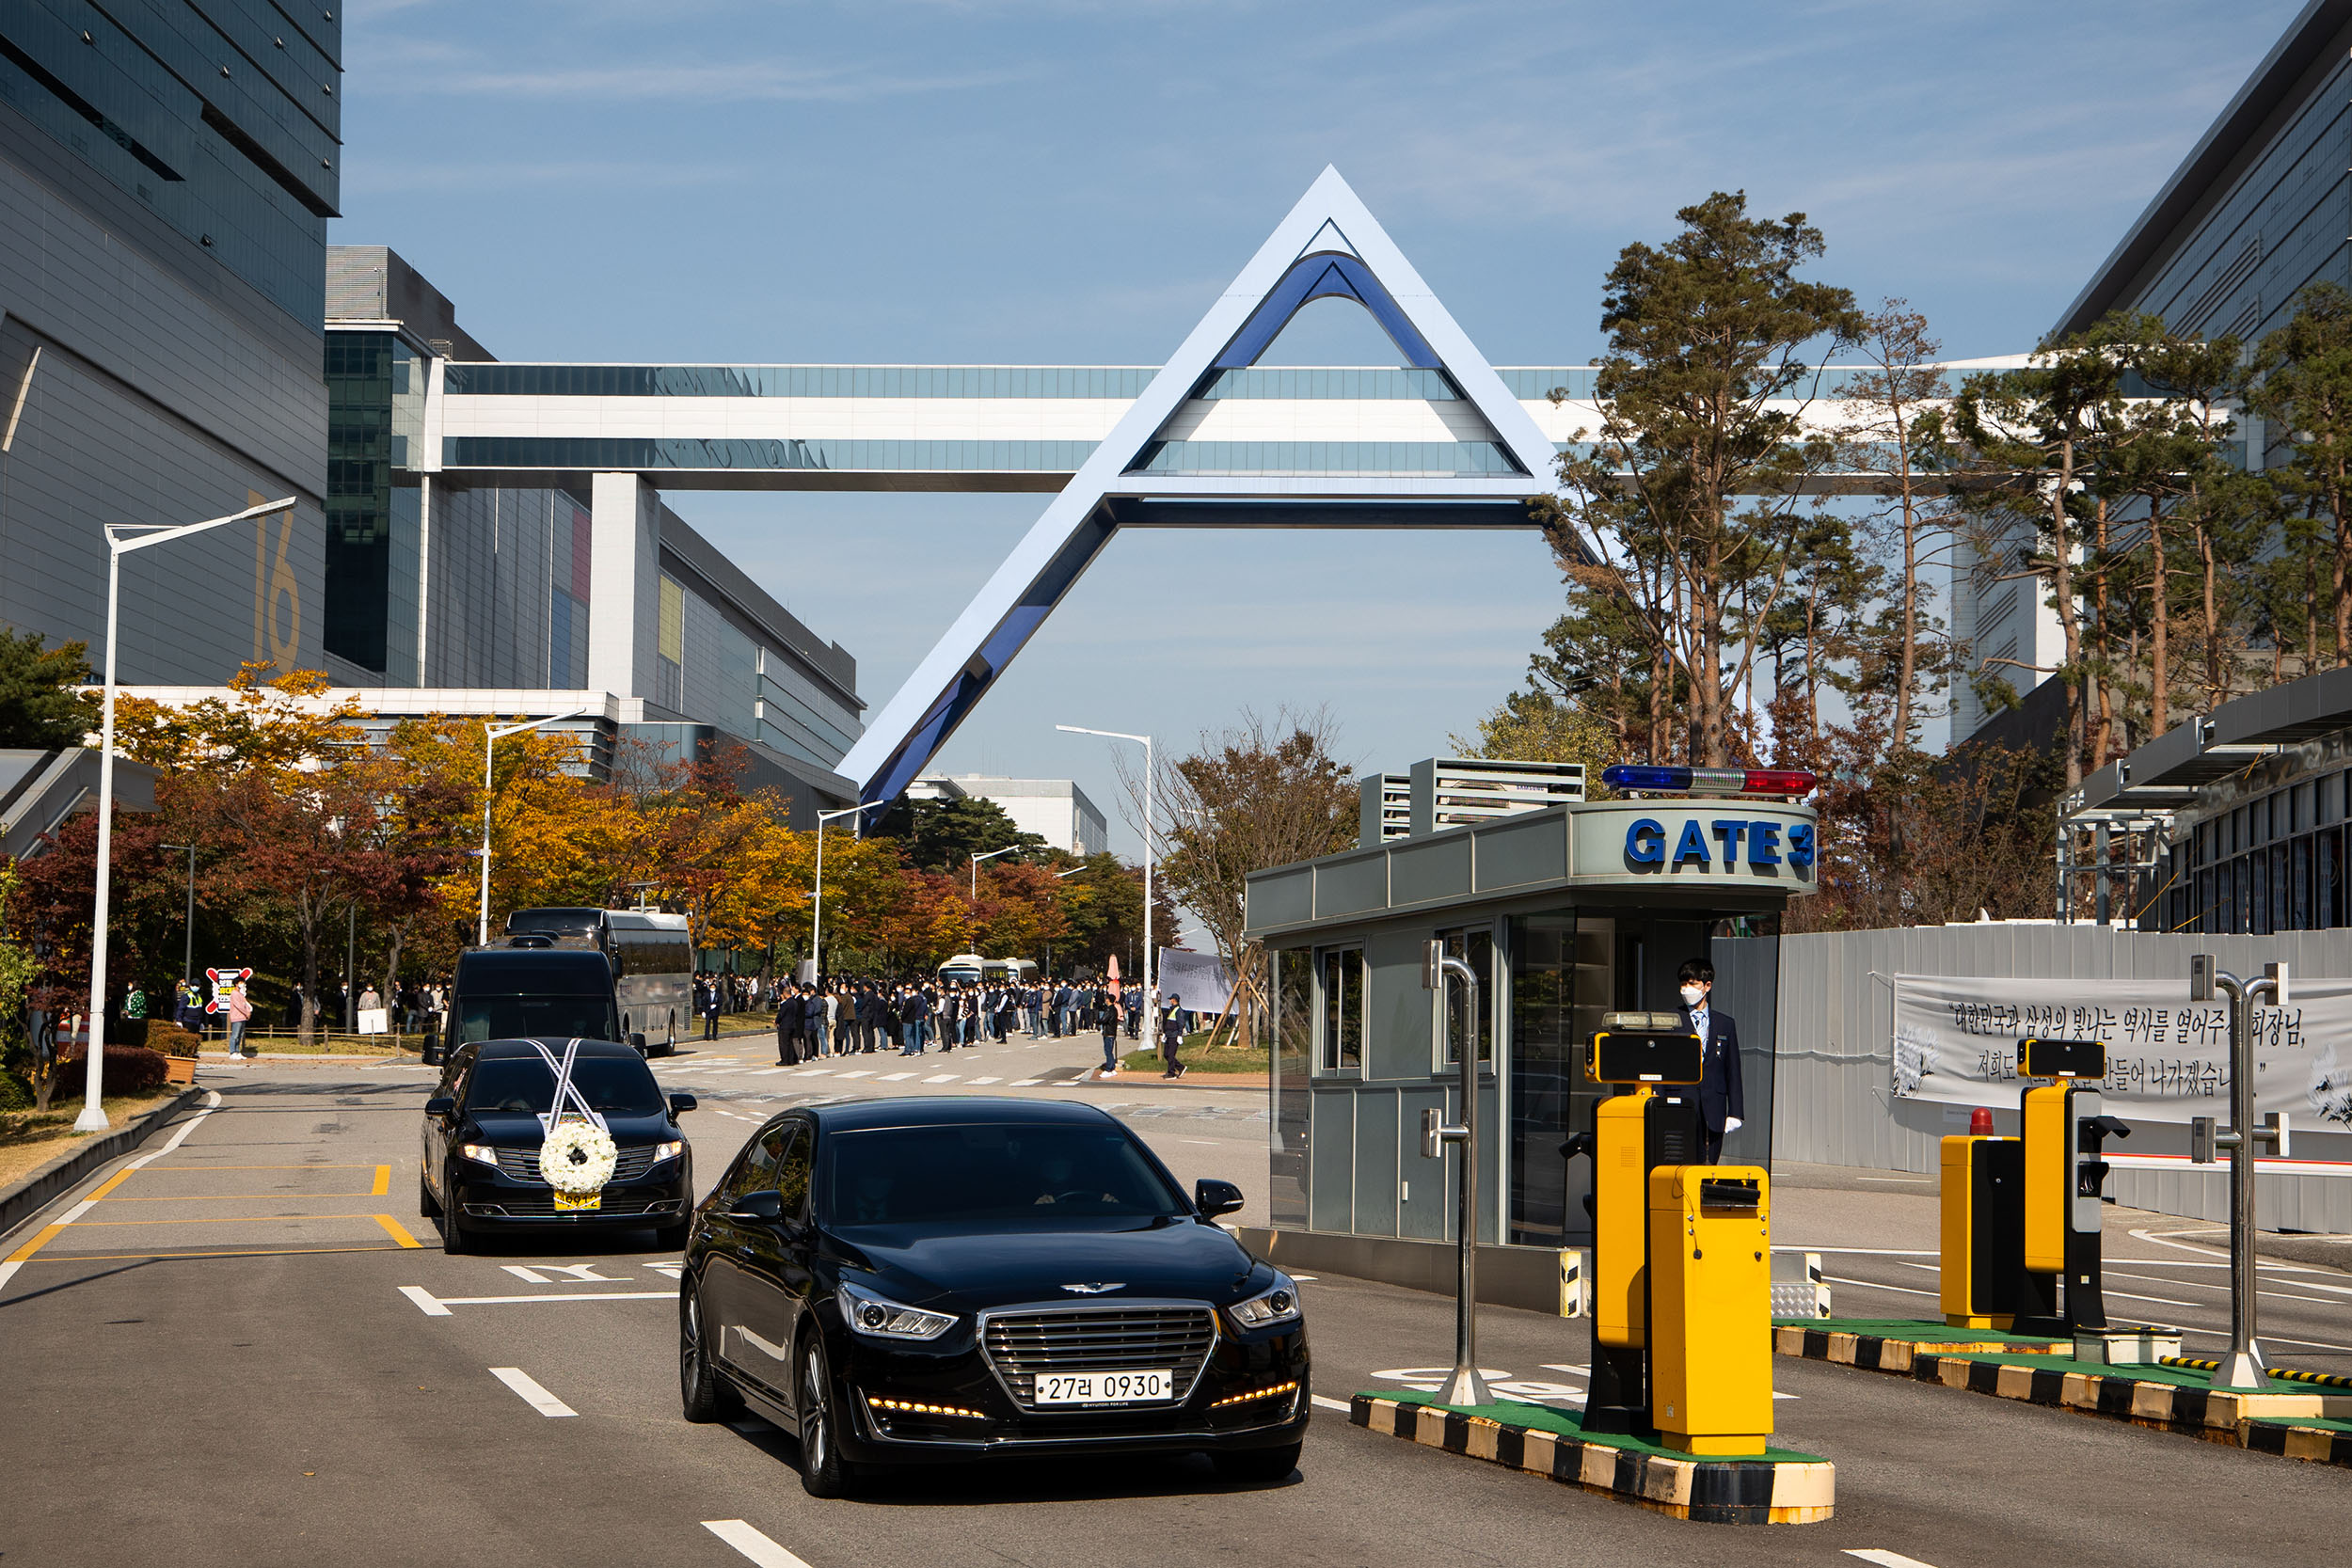 A hearse carrying the casket of Samsung Electronics Co. Chairman Lee Kun-hee, left, leaves the company's semiconductor plant in South Korea, on Wednesday, October 28.